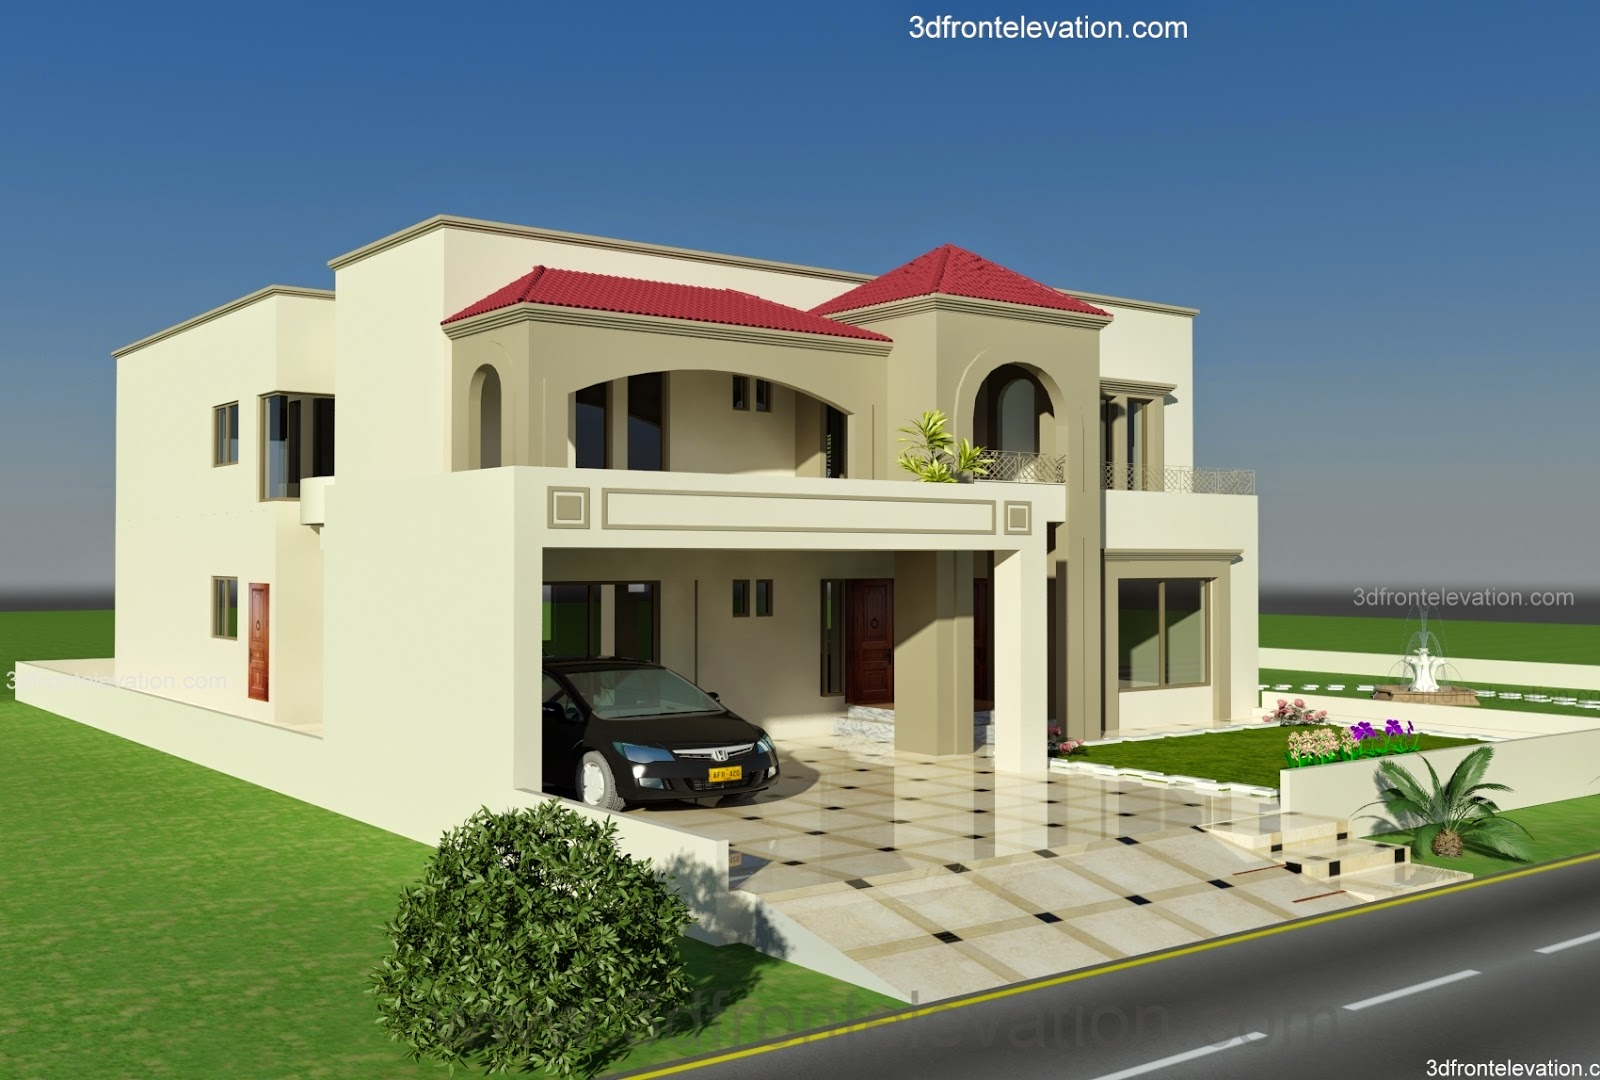 House Design Pictures In Pakistan Ideasidea